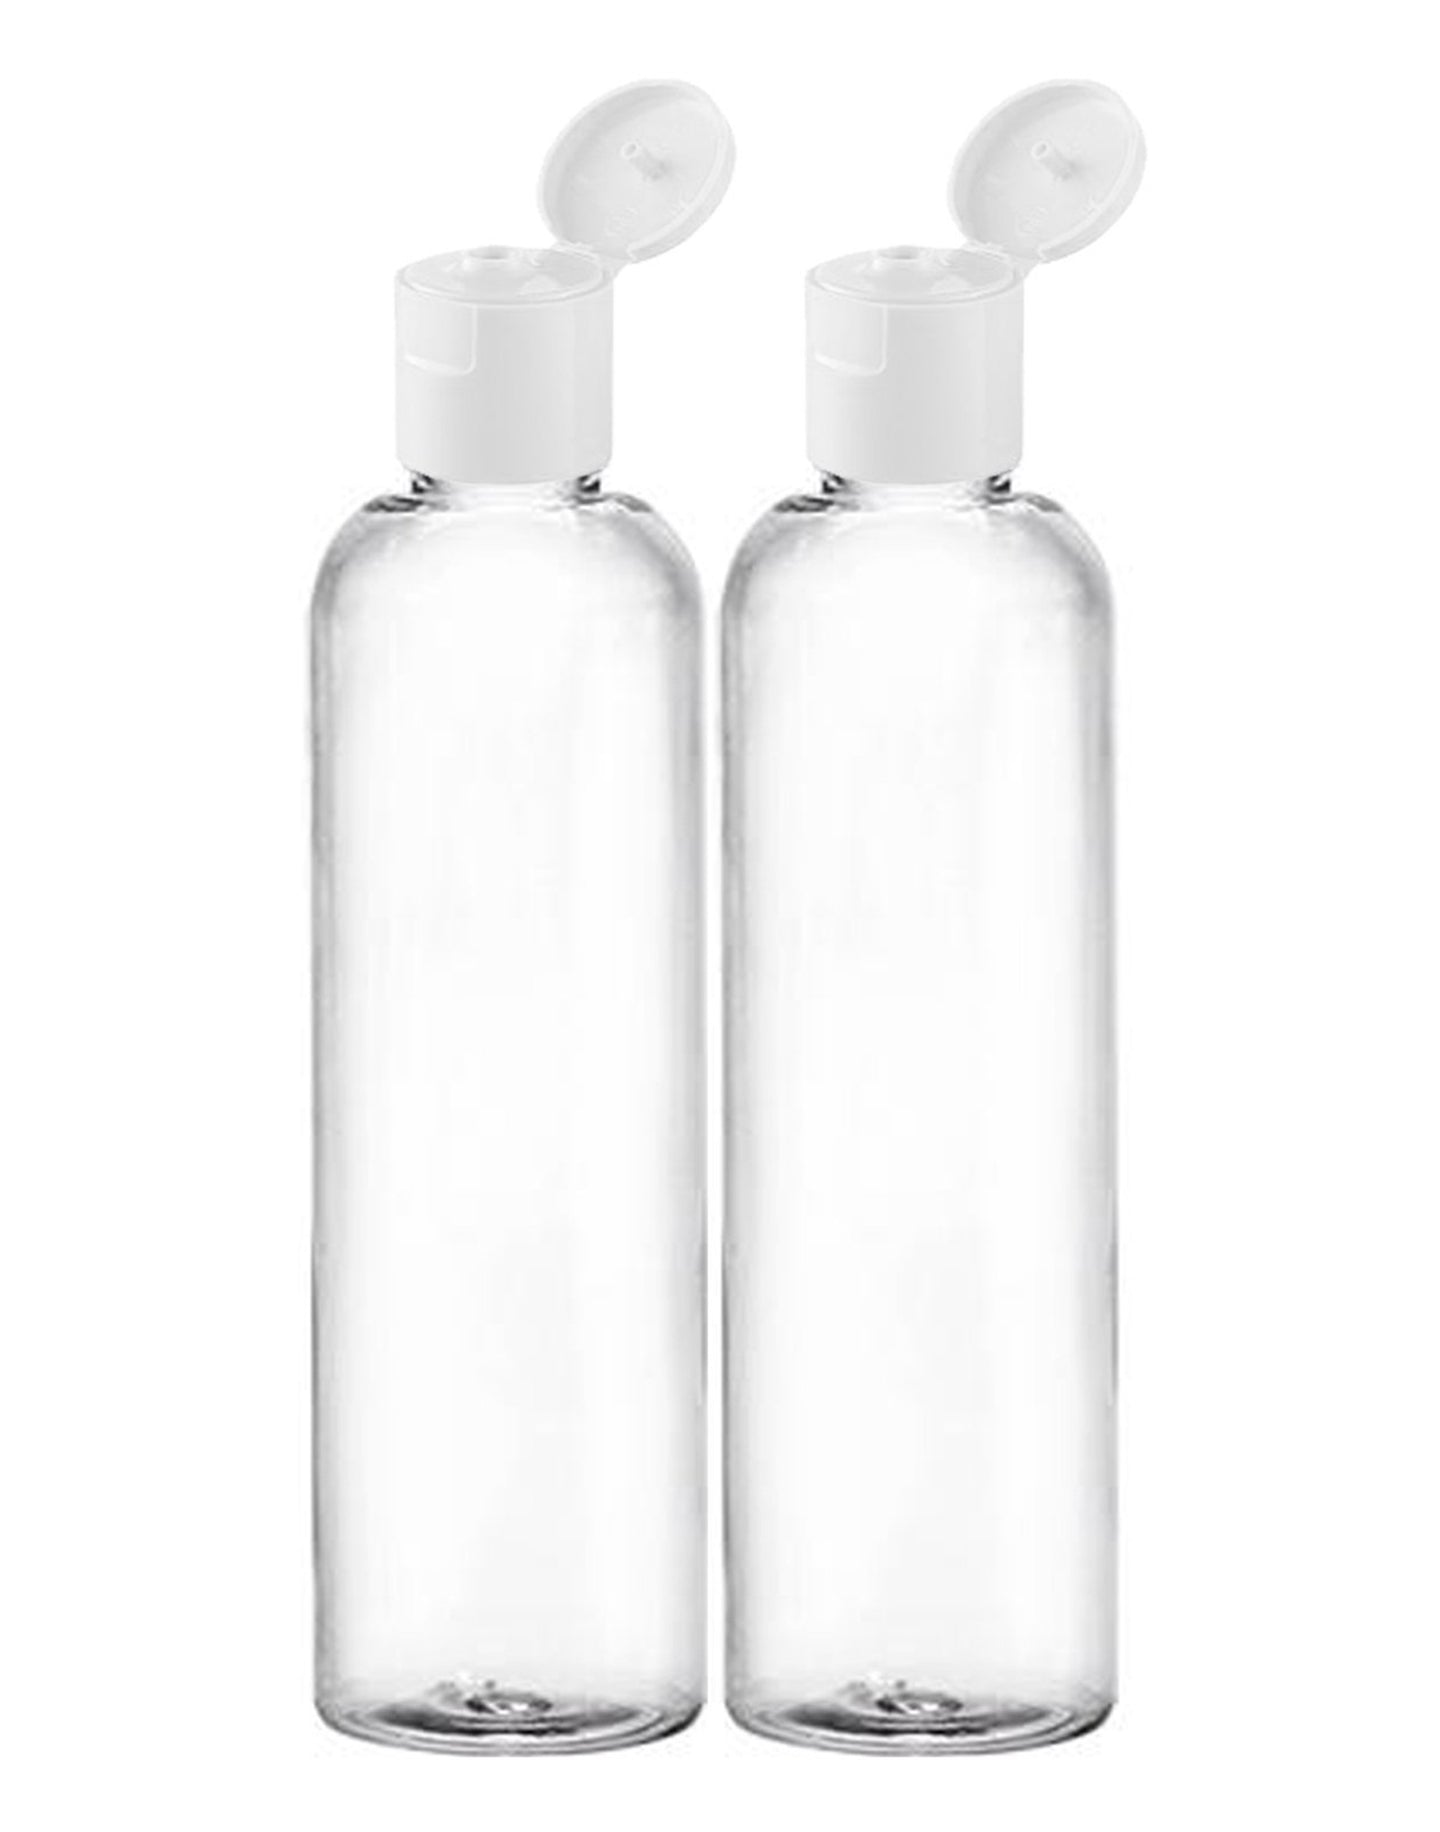 MoYo Natural Labs 8 oz Travel Bottle, Empty Travel Containers with Flip Caps, BPA Free PET Plastic Squeezable Toiletry/Cosmetic Bottle (2 pack, Clear)